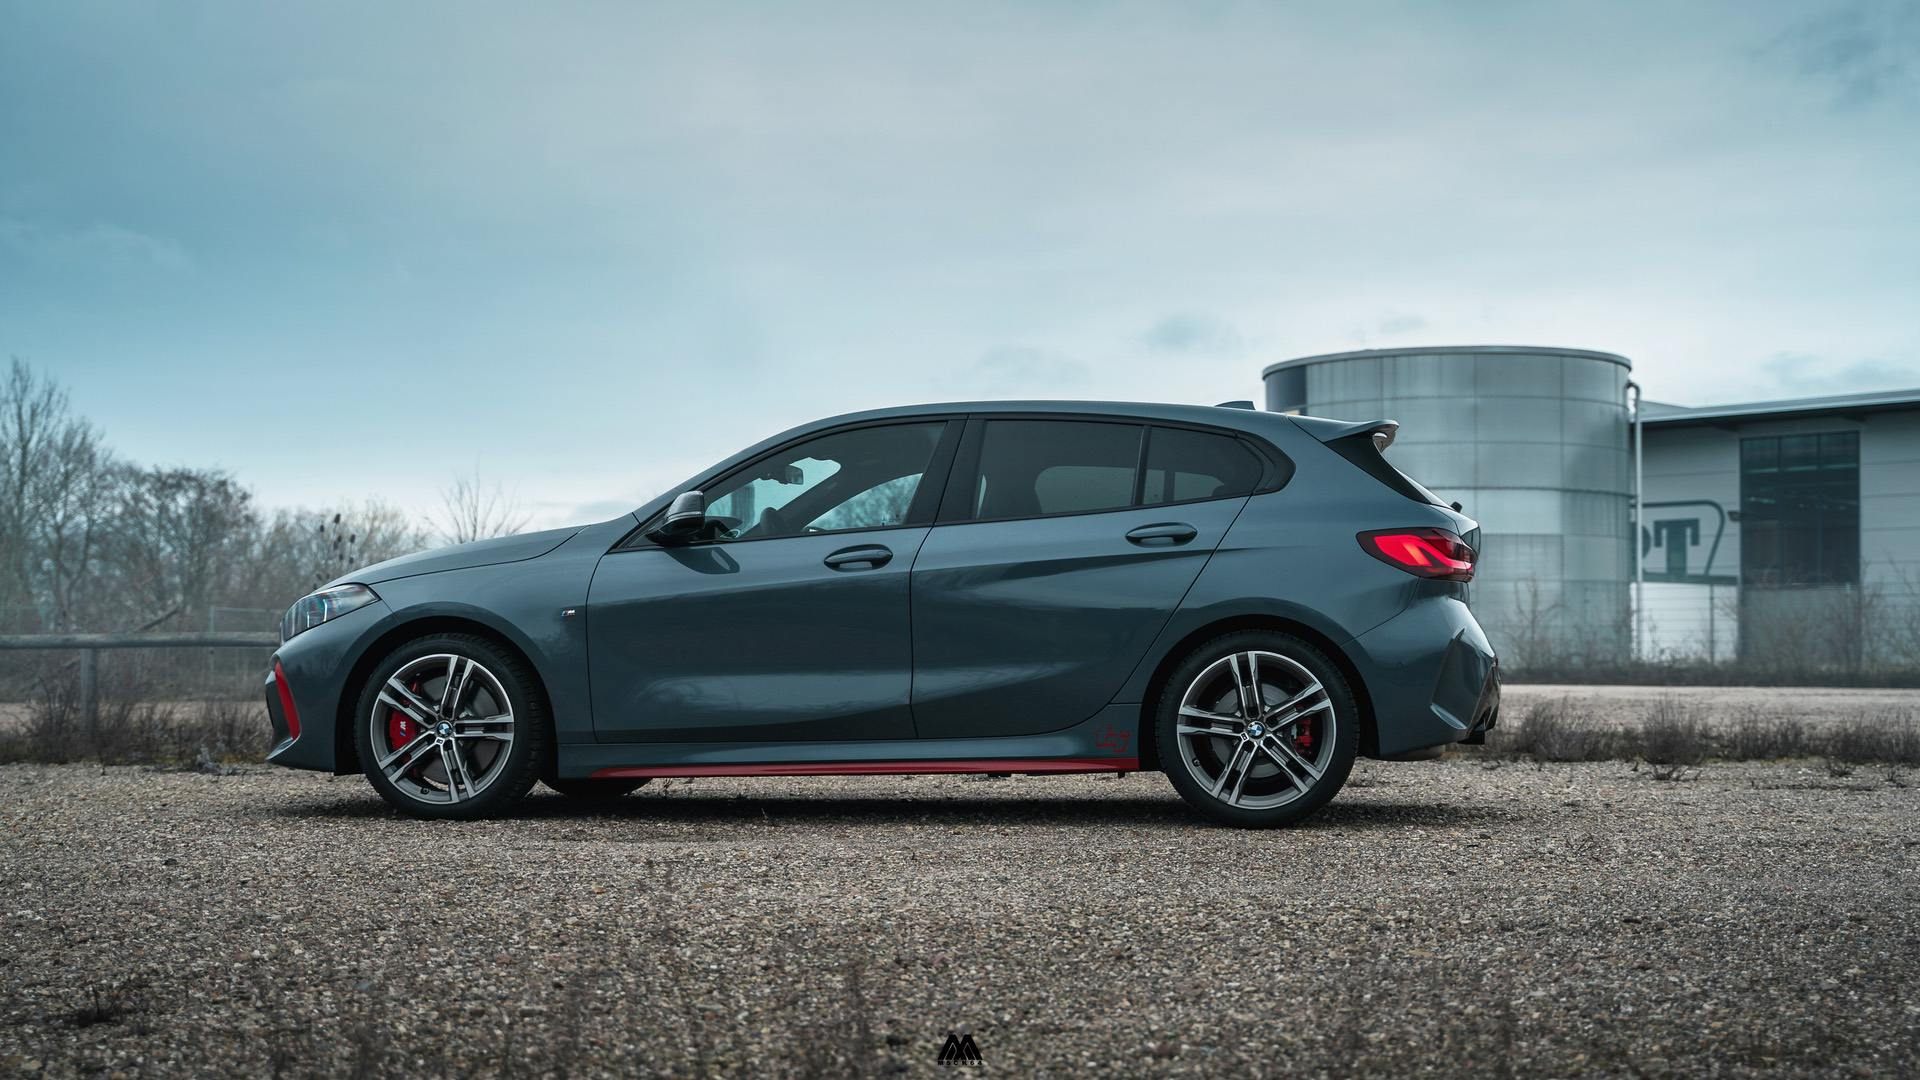 TEST DRIVE: BMW 128ti – The Best 1 Series For Sale, But The Best Hot Hatch?